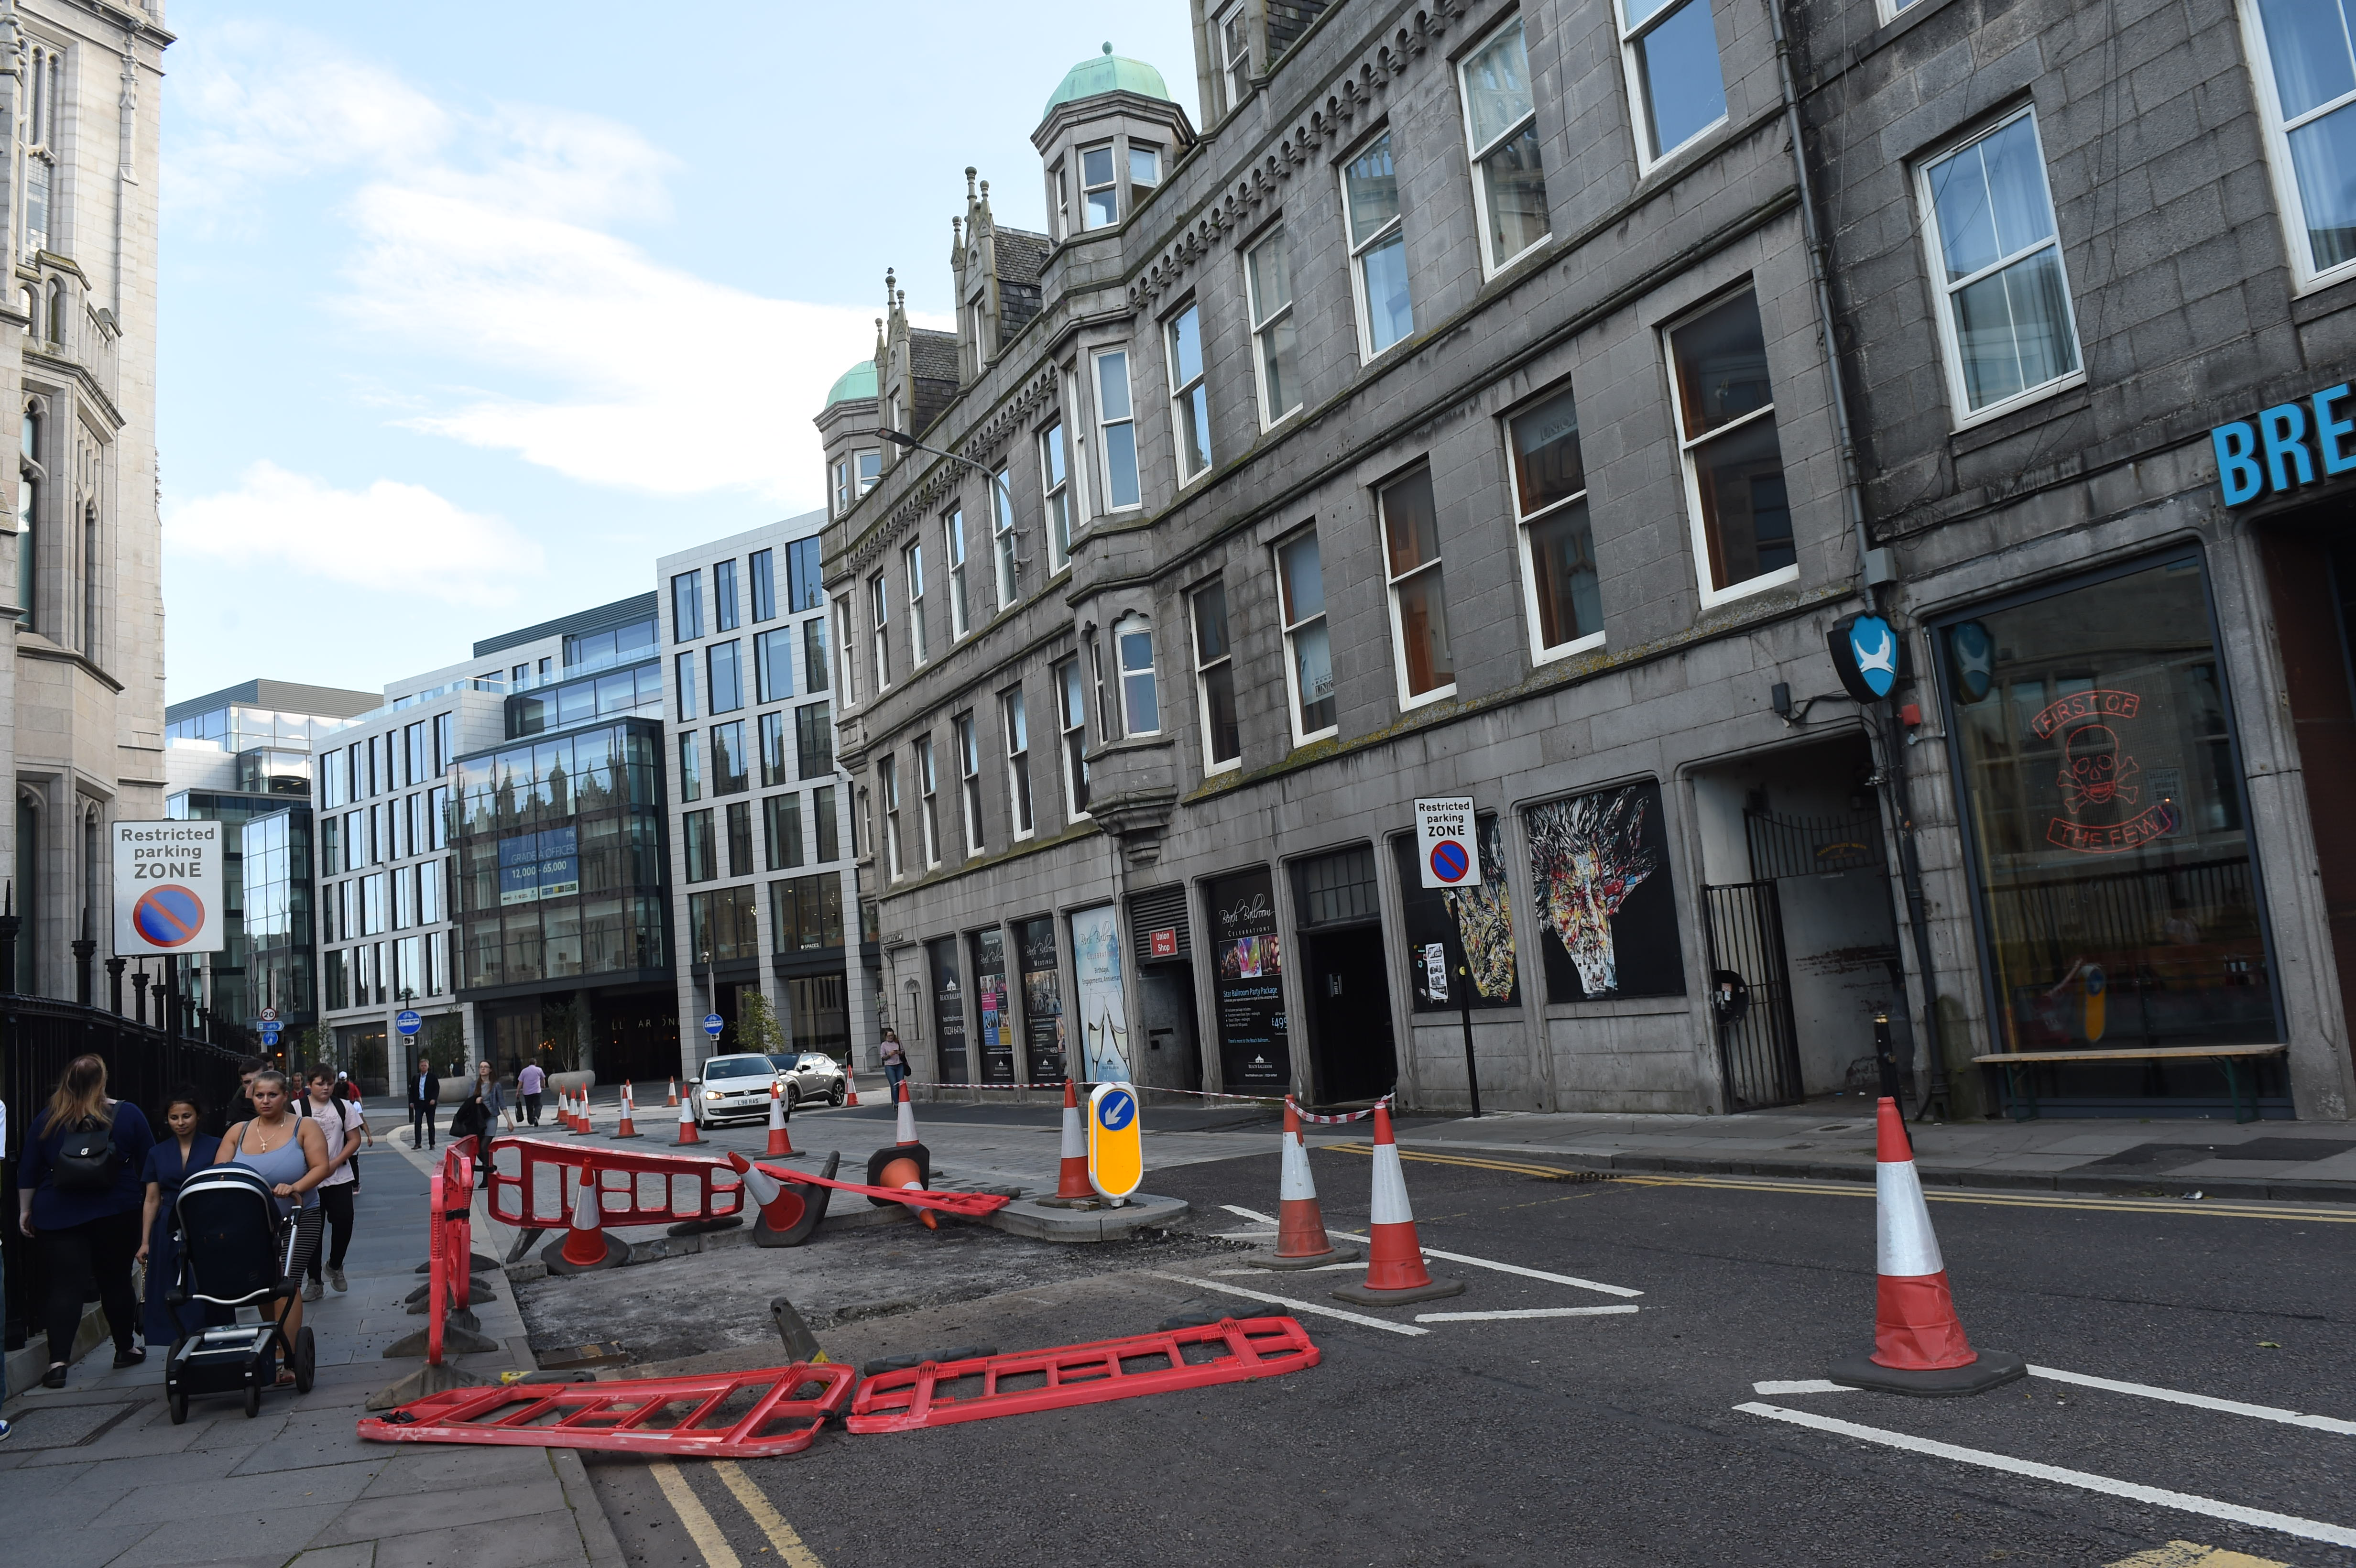 Broad Street is closed for a week while repairs are carried out.